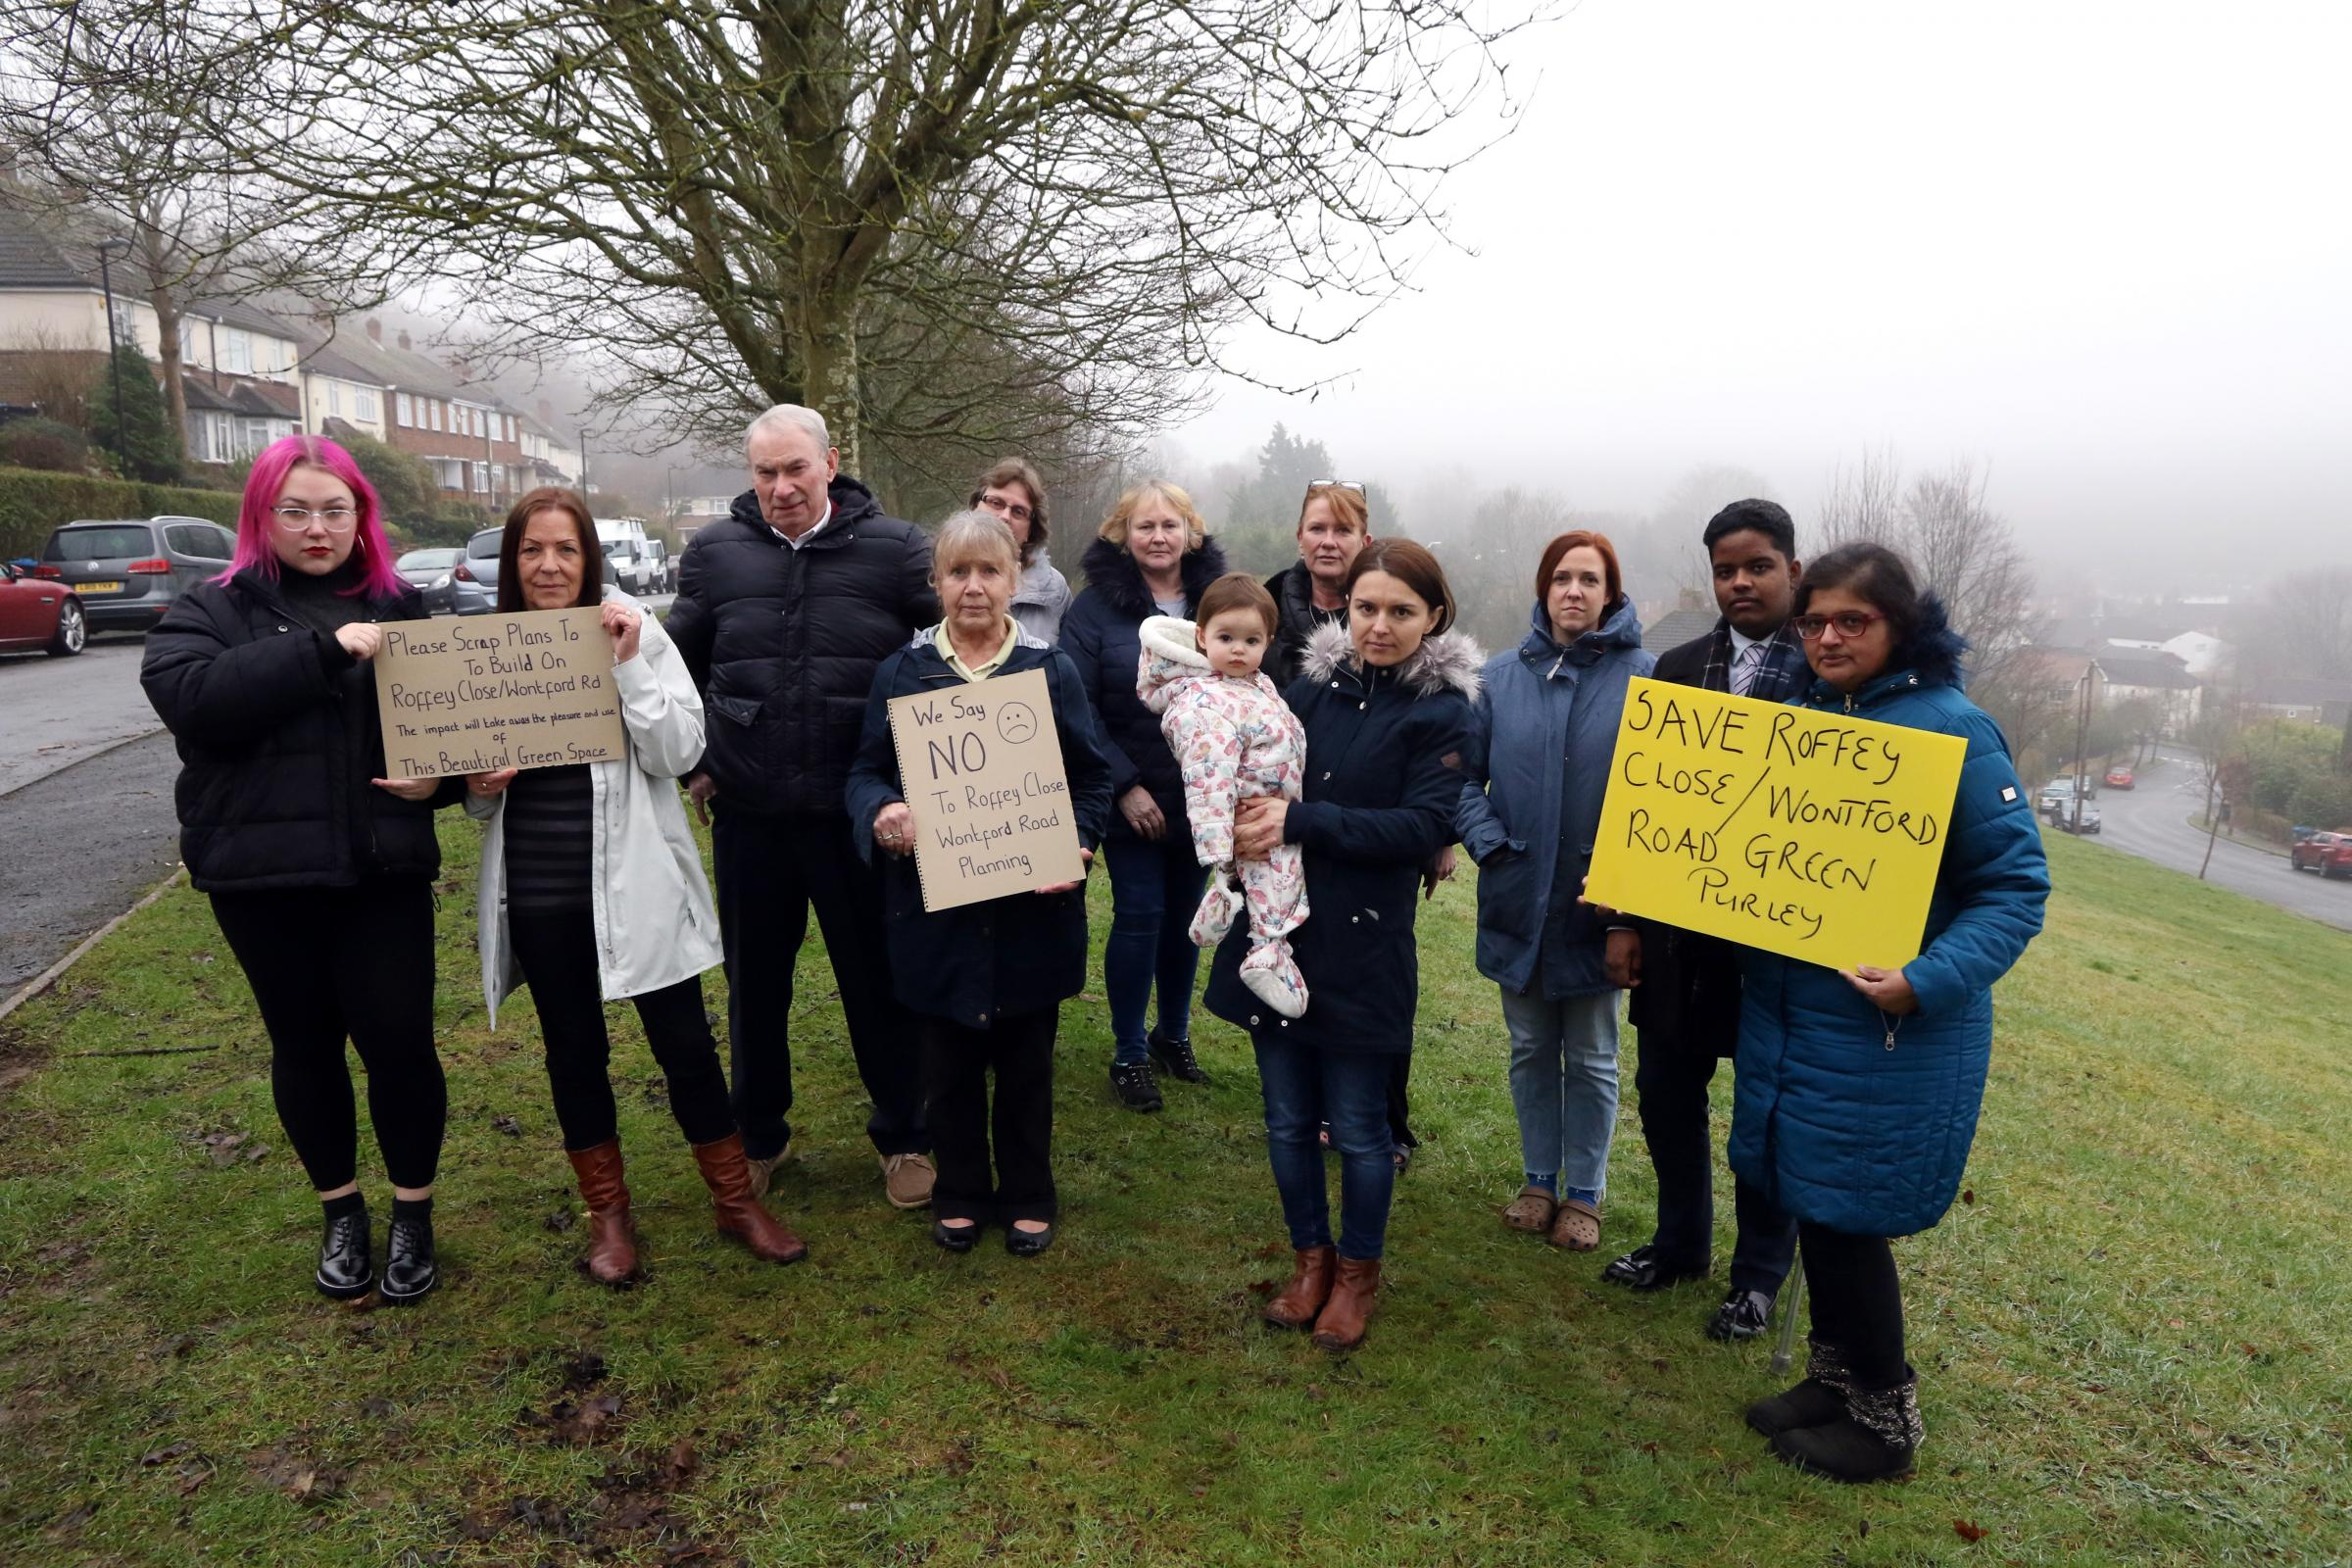 Purley neighbours furious at plans to build new homes on 'lovely green space'